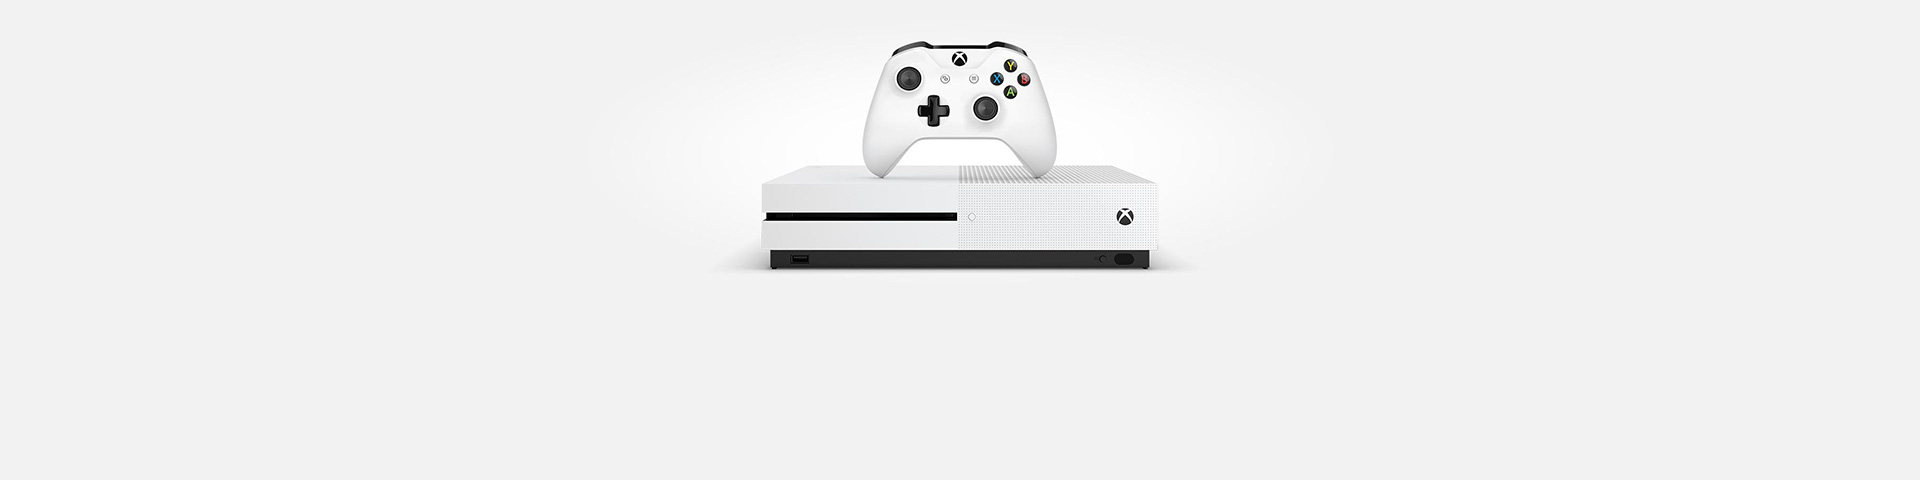 An Xbox One S console and controller